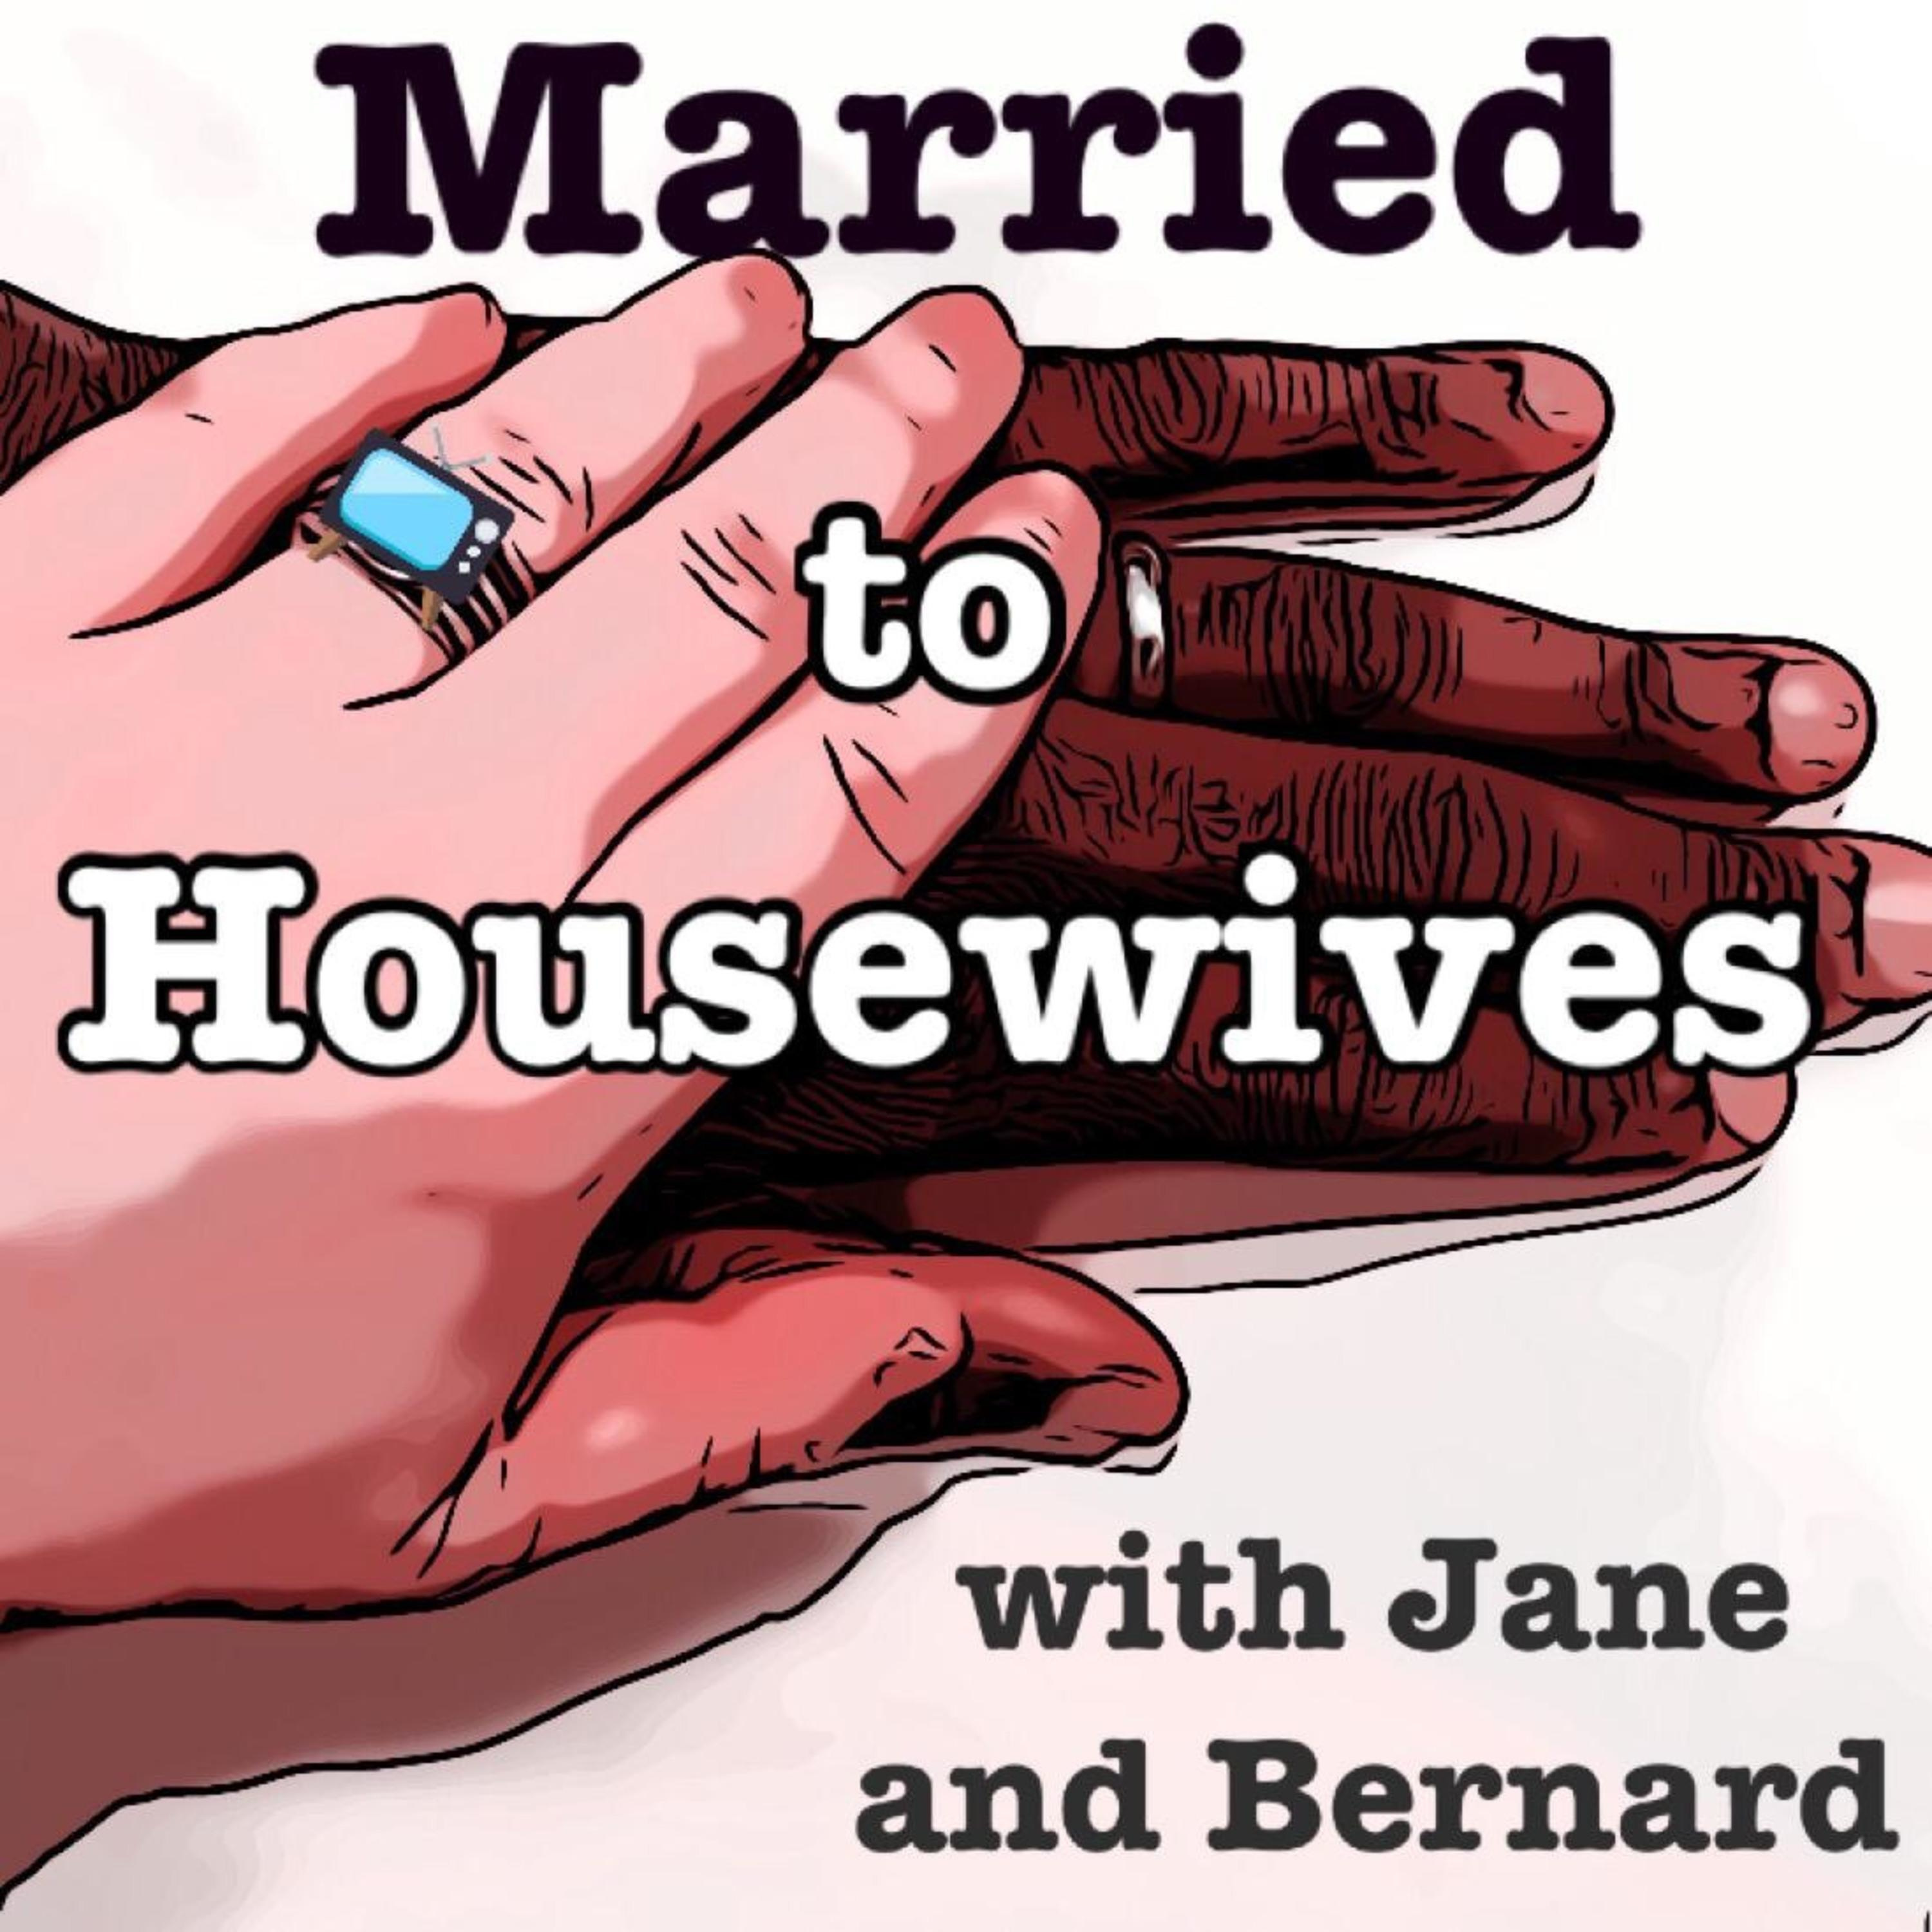 Married to Housewives